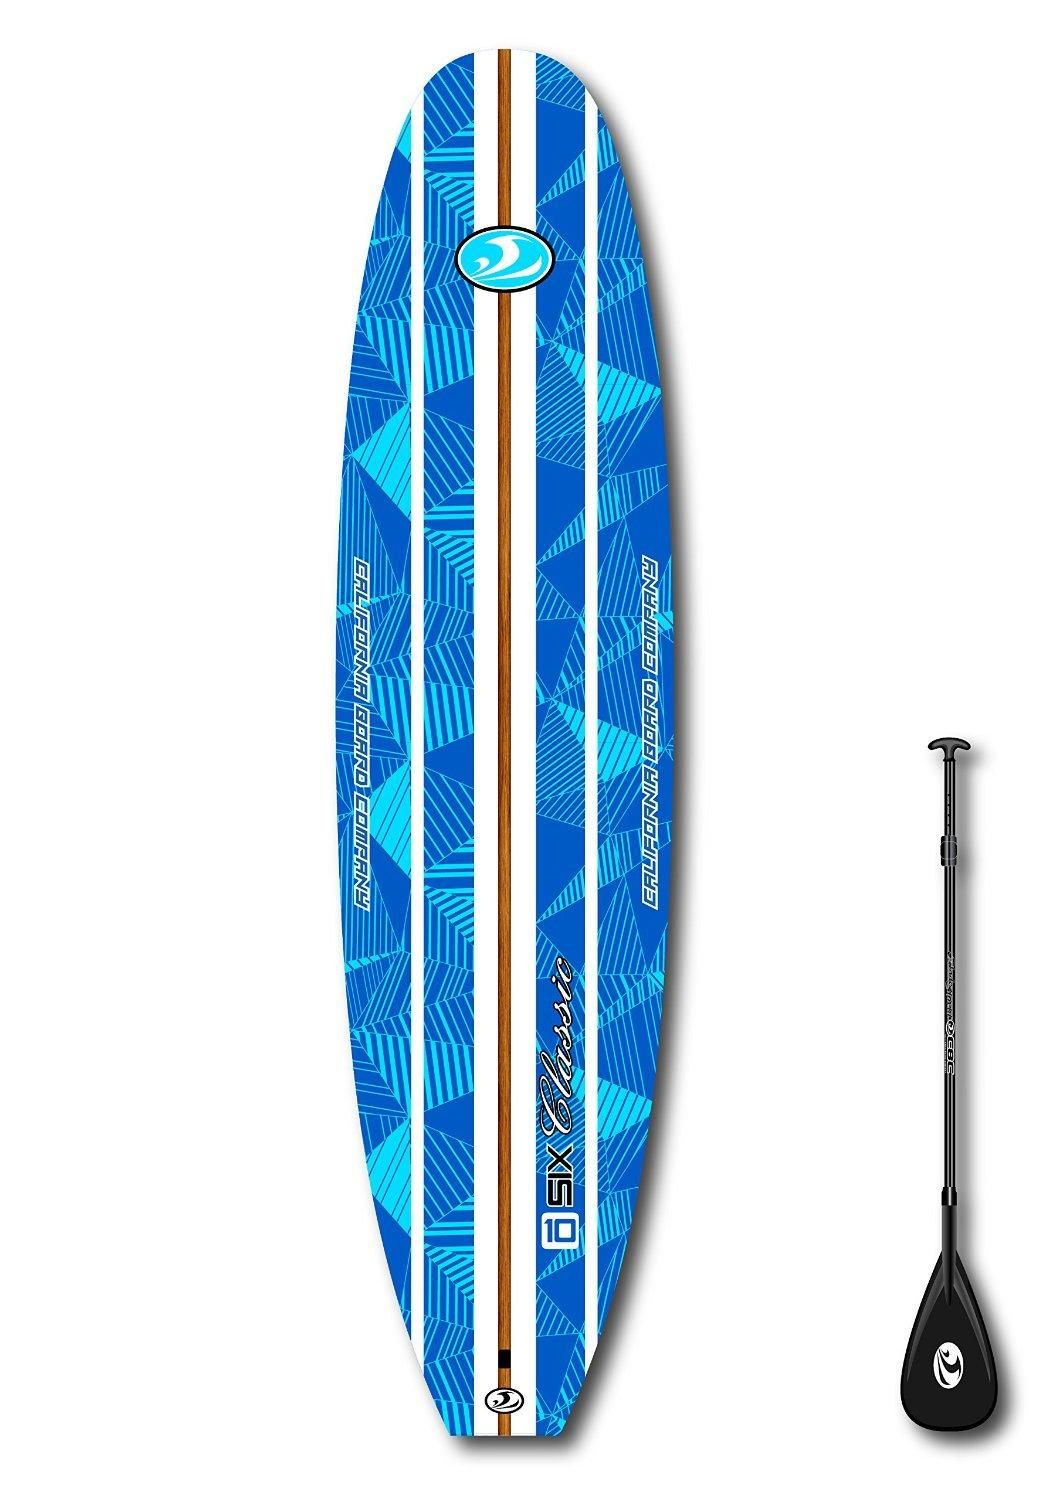 California Board Company Cbc Stand Up Paddle Board Standup Paddle Best Inflatable Paddle Board Best Paddle Boards